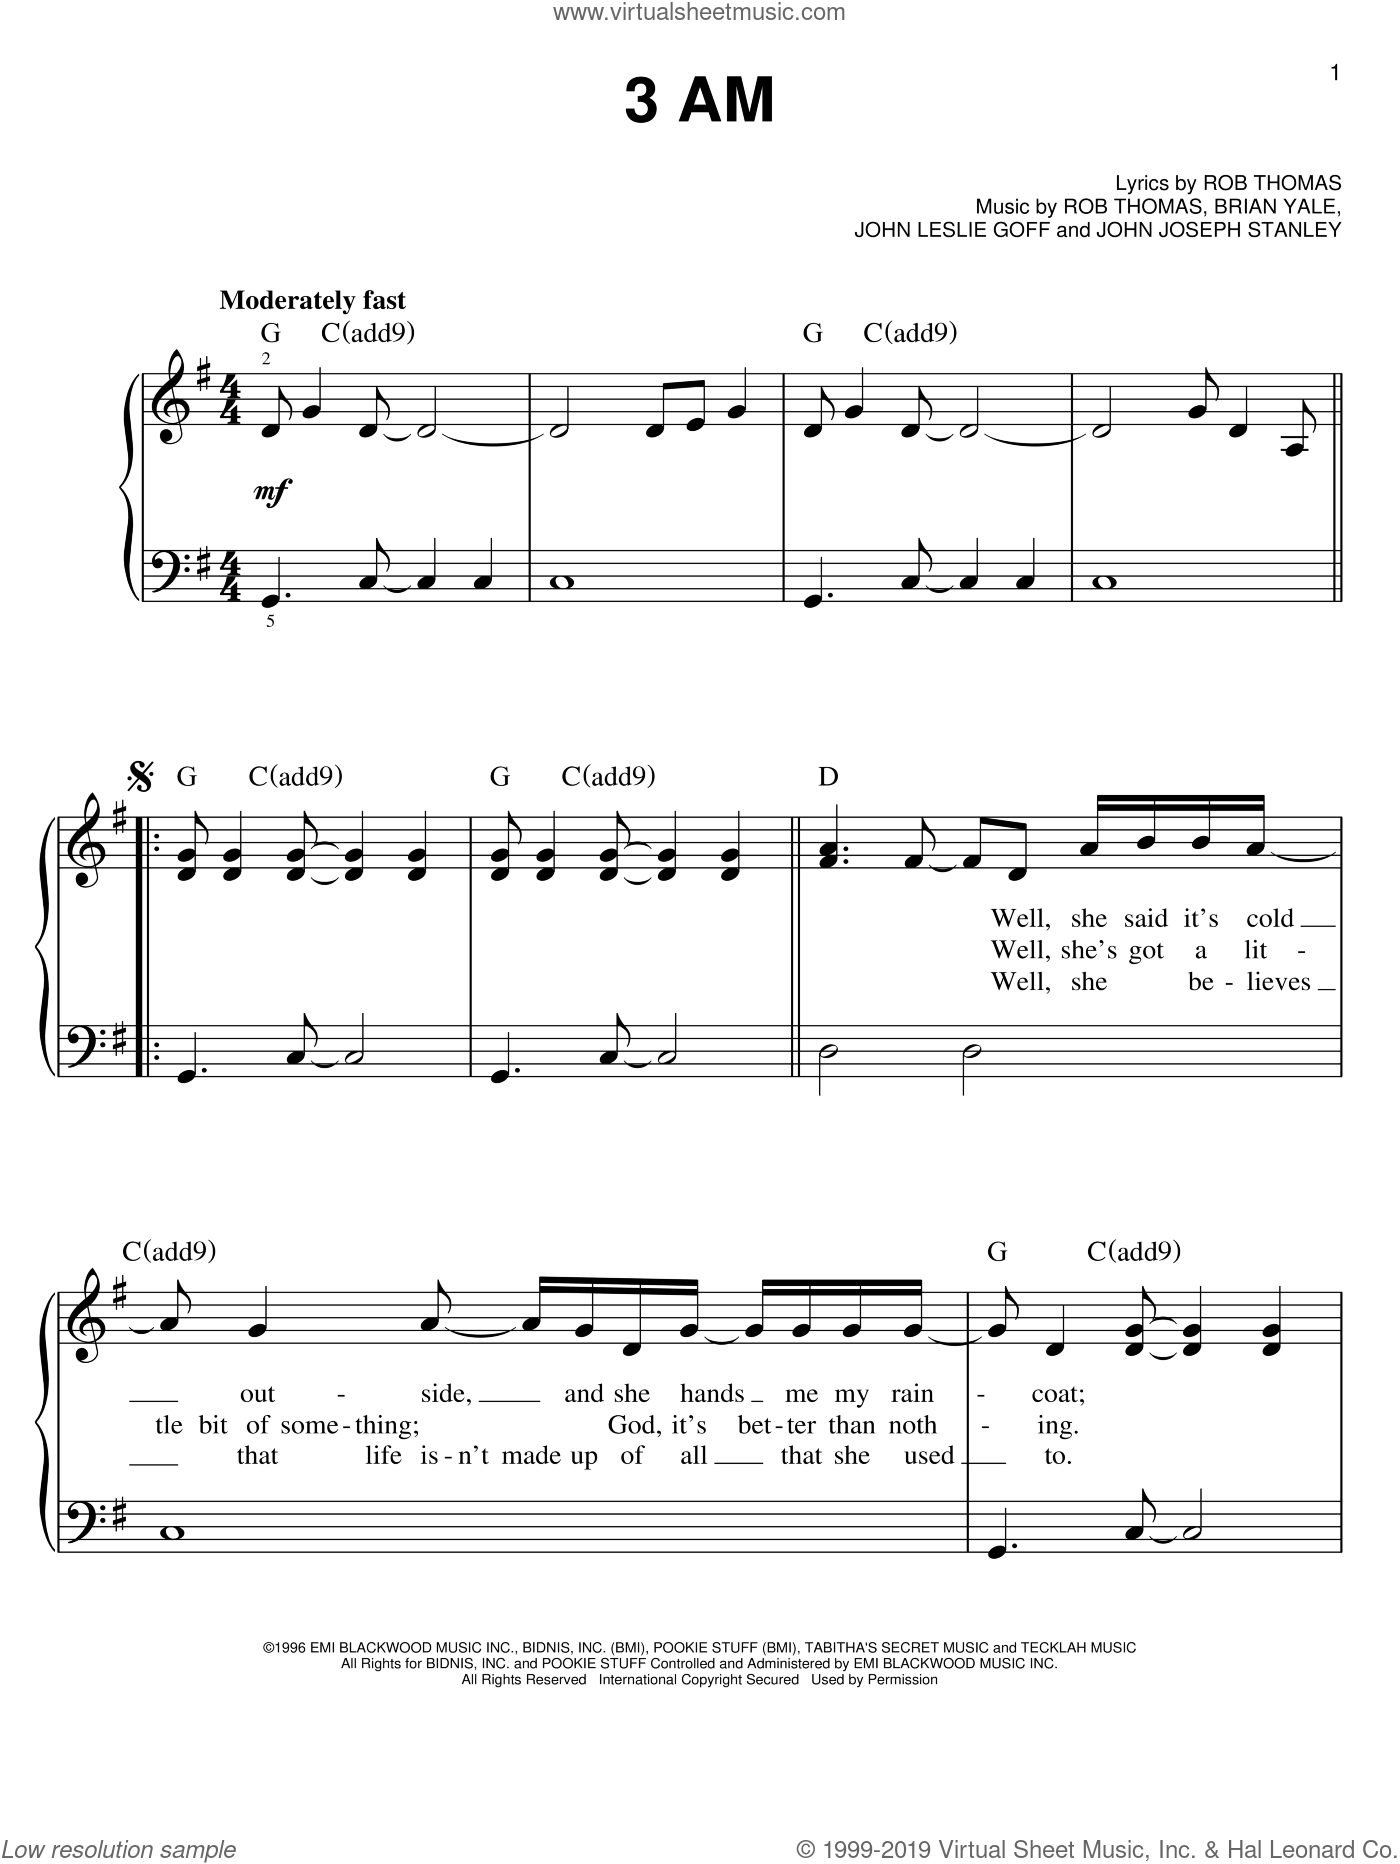 3 AM sheet music for piano solo by Rob Thomas